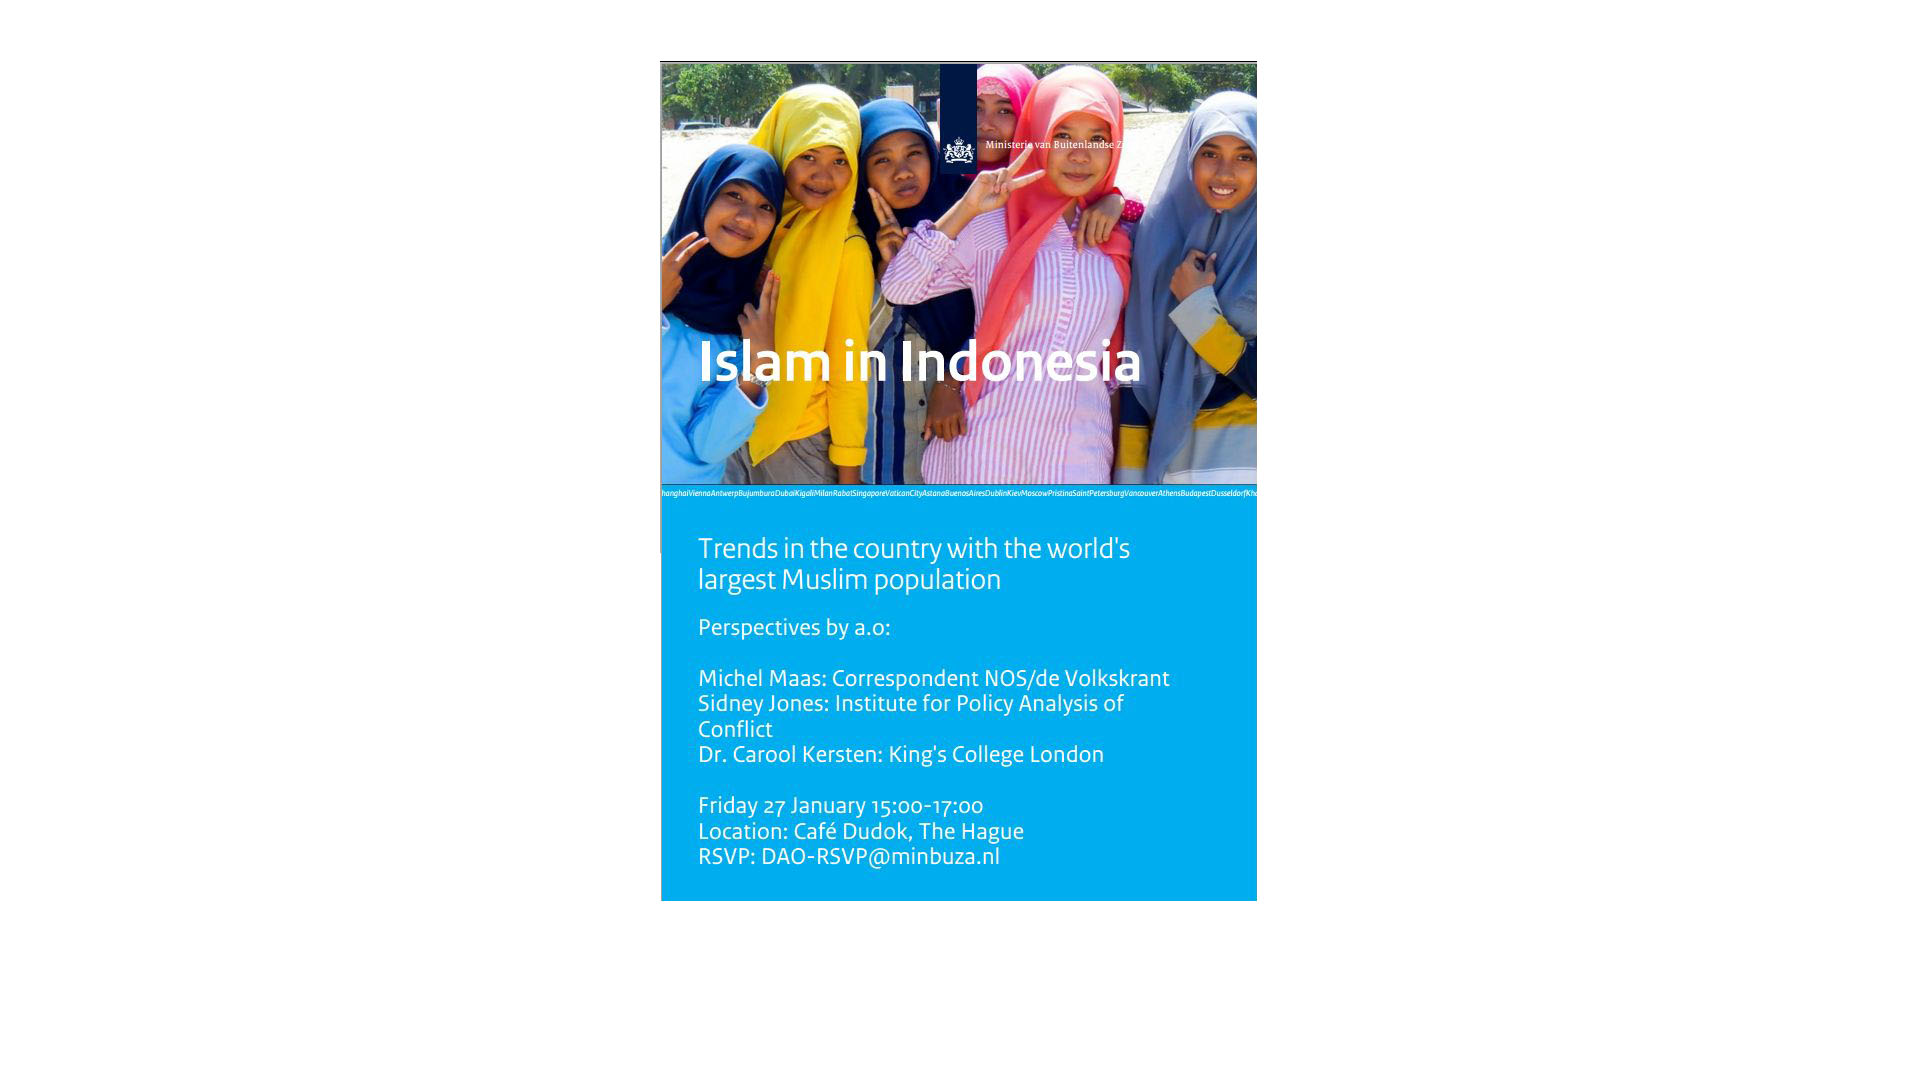 Islam in Indonesia